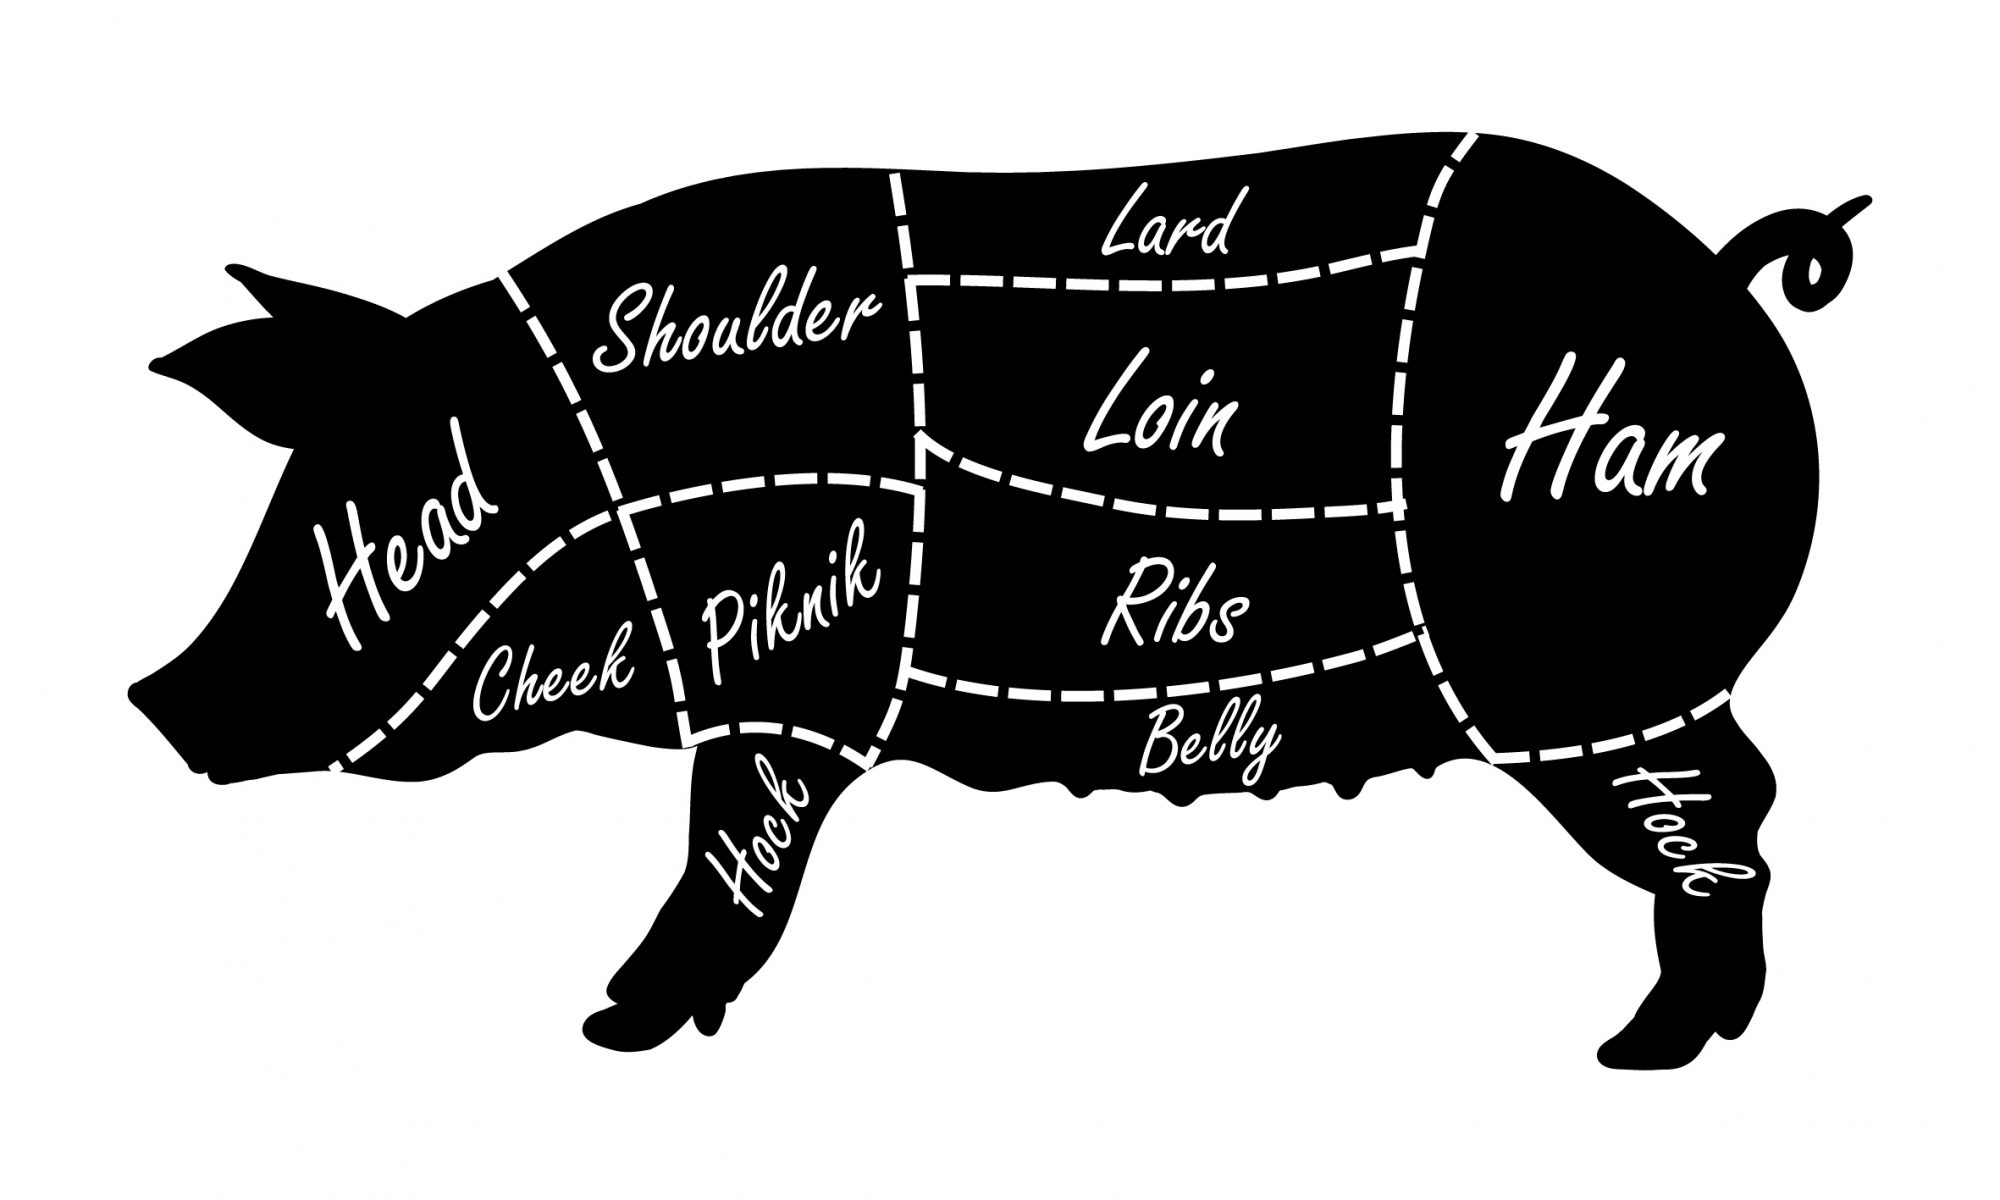 Pork Diagram Getty 12/18/19